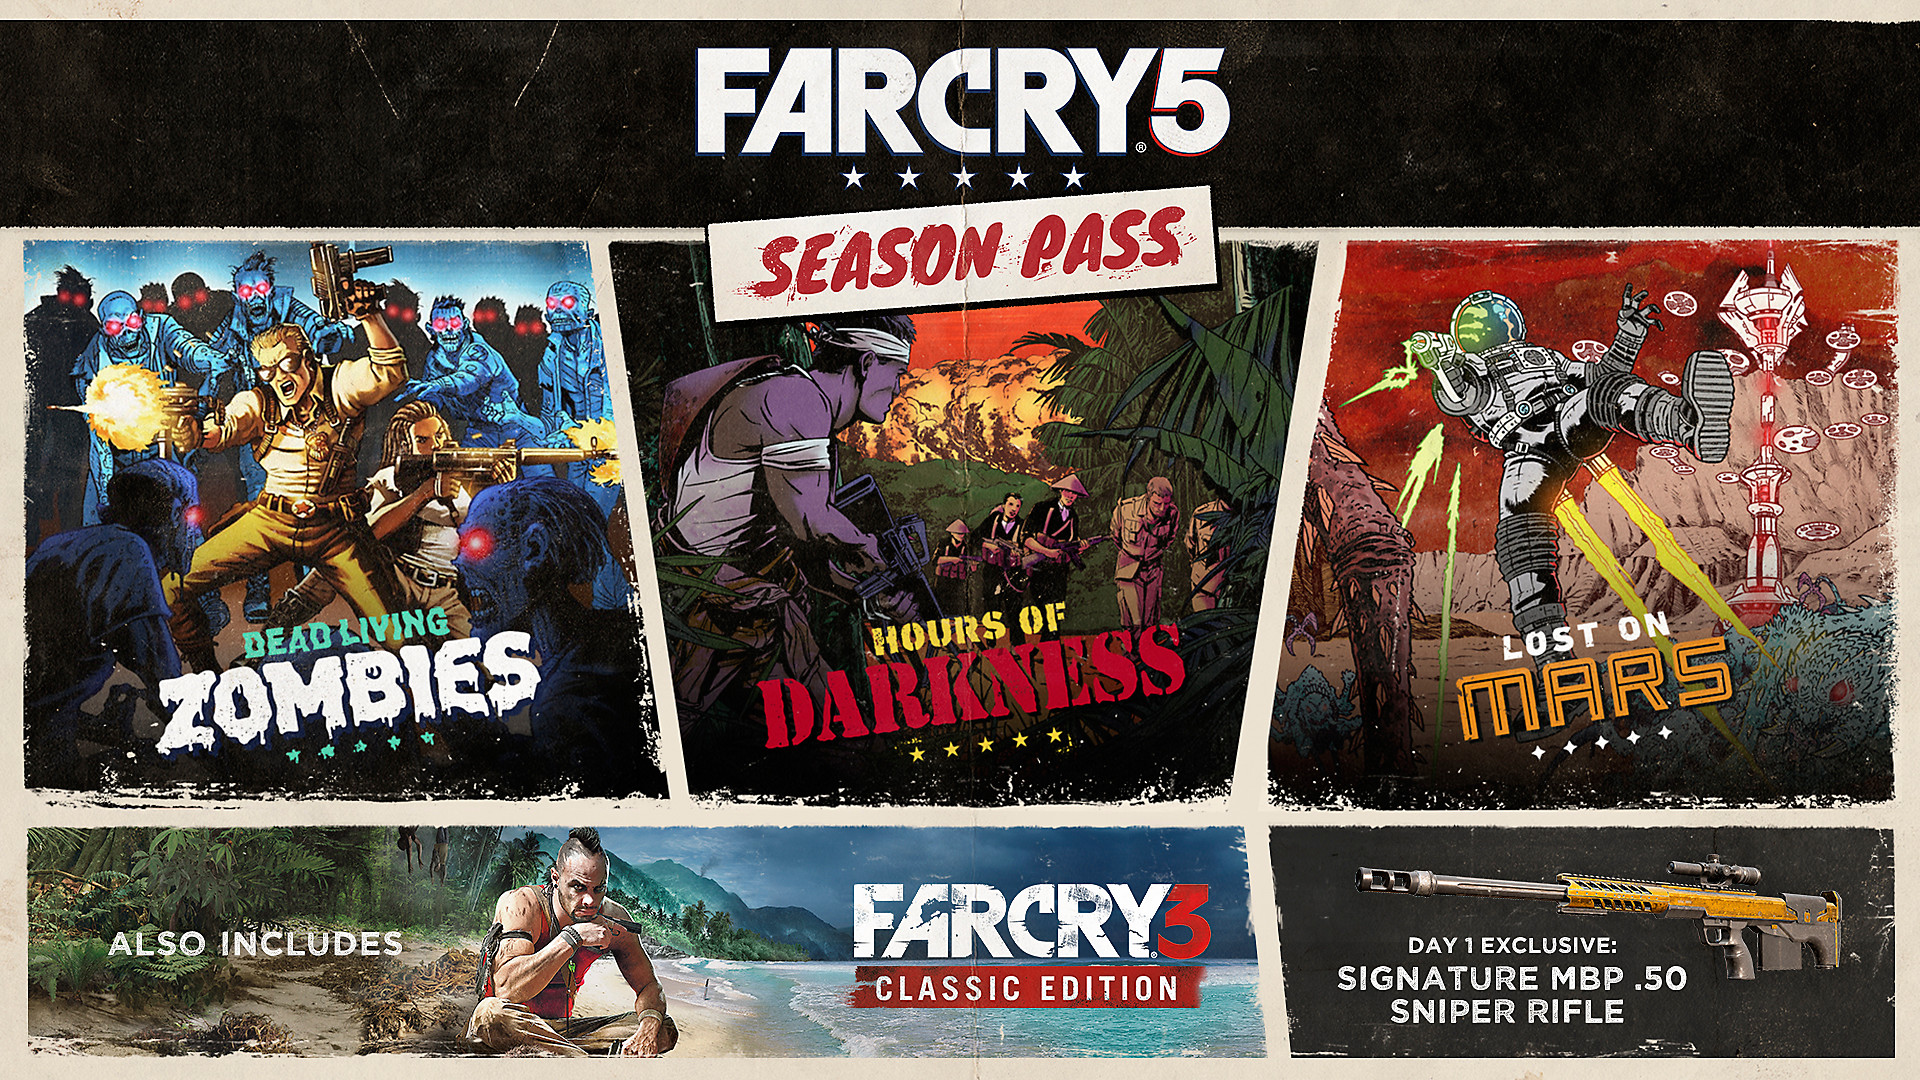 💐 Far cry 5 ps4 digital code | Game Cheats Me  2019-03-25